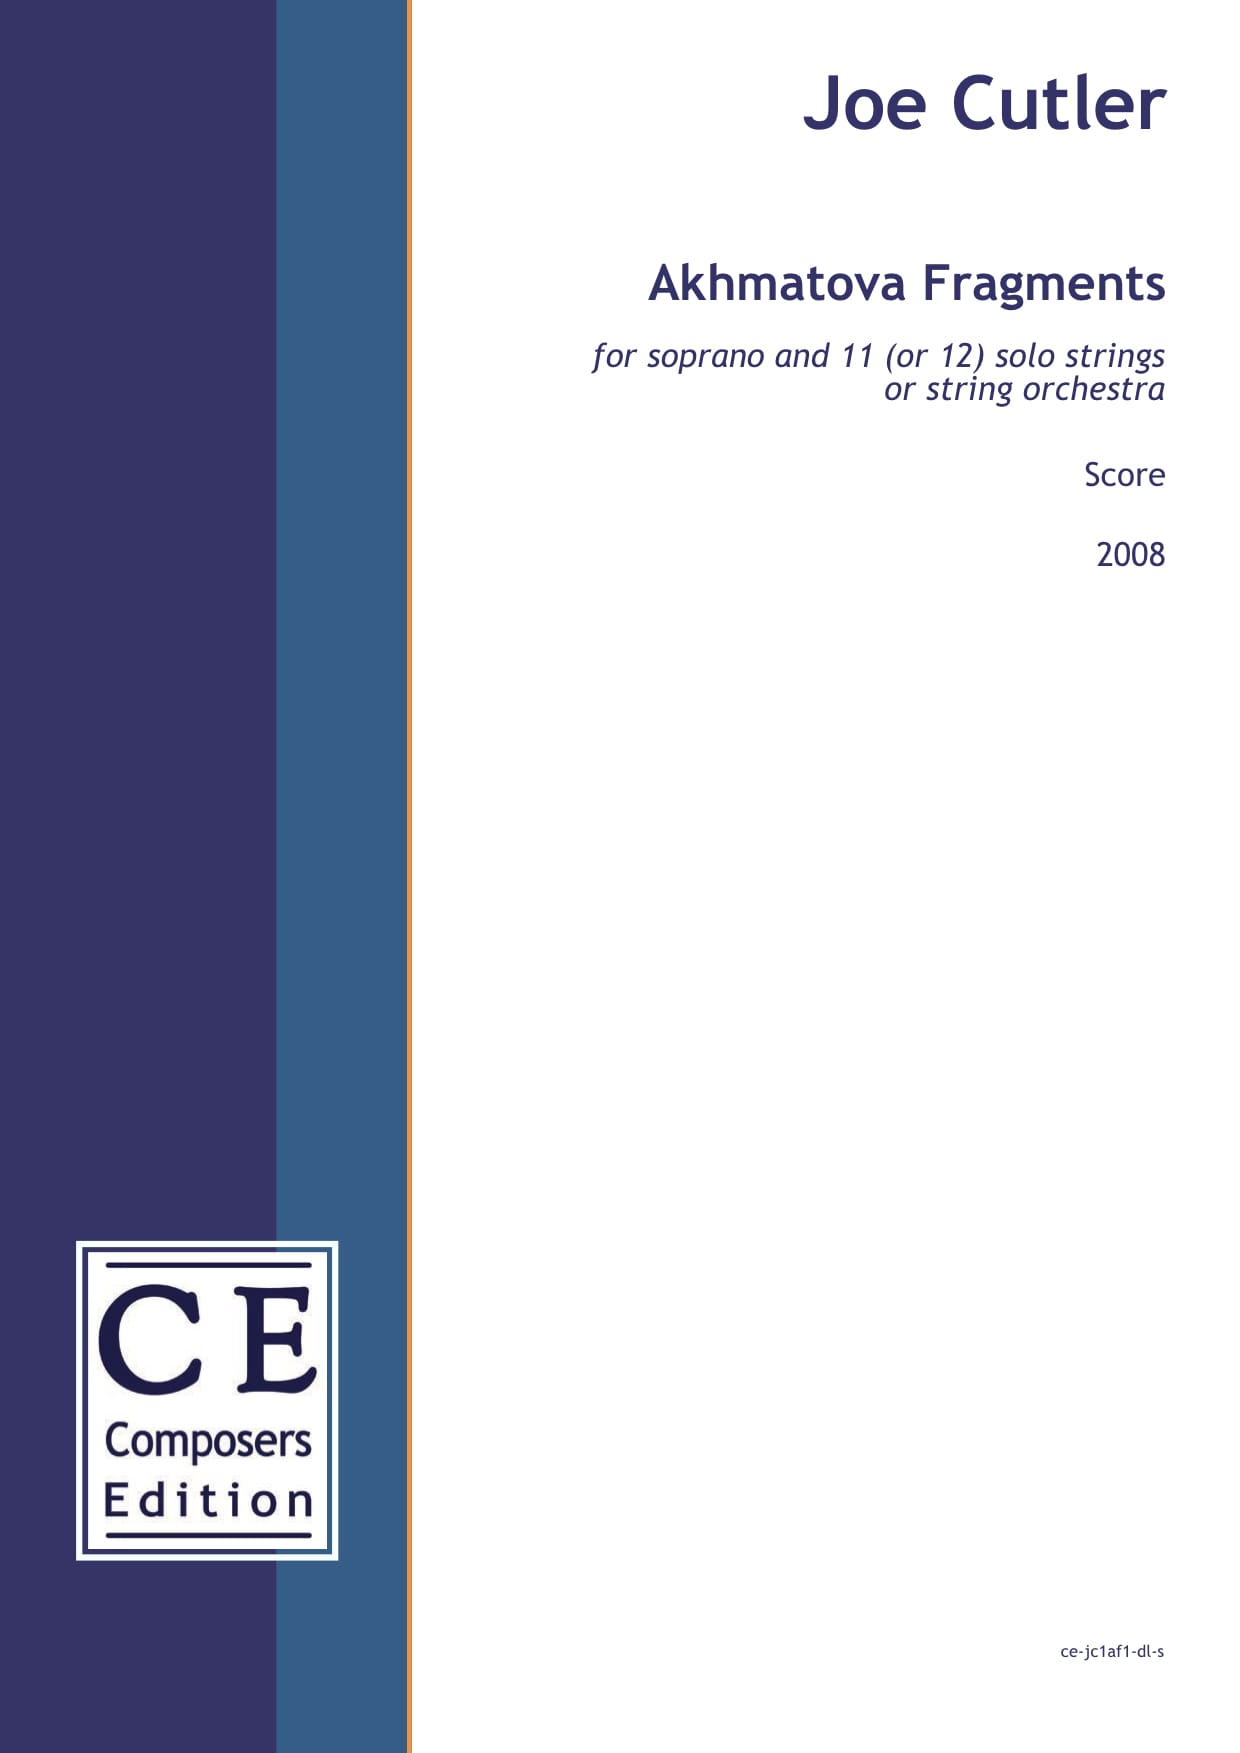 Joe Cutler: Akhmatova Fragments for soprano and 11 (or 12) solo strings or string orchestra